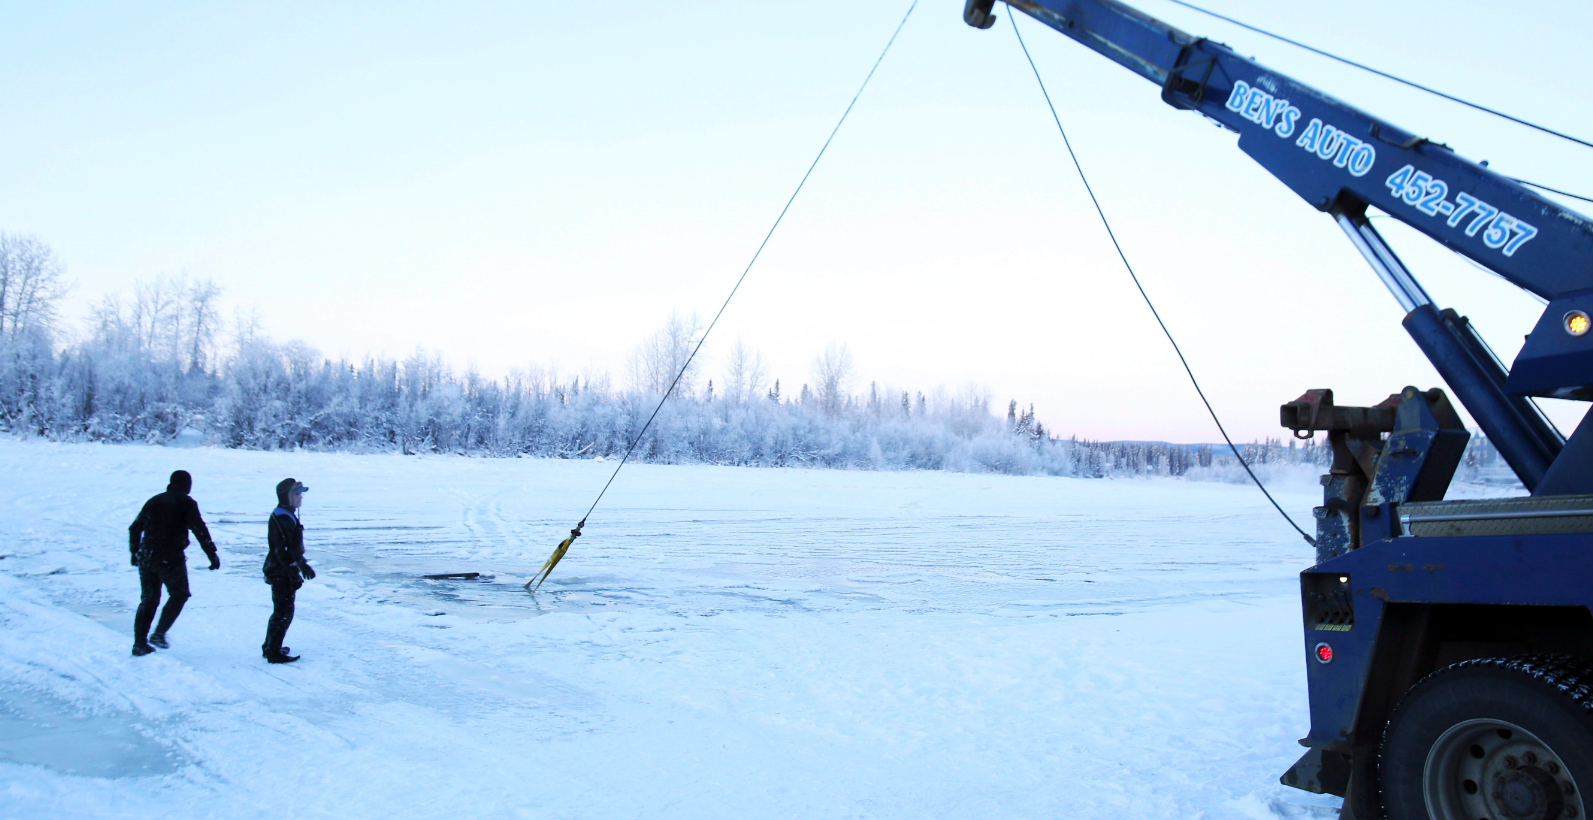 In this Dec. 19, 2014 photo, a dive crew watches the recovery of a vehicle from the icy water near the Pike's Landing Chena River Ice Bridge entrance in Fairbanks, Alaska. At least two vehicles recently sank into the Chena River on a section long used as an ice-covered shortcut between Airport Way and Chena Small Tracts Road. (Eric Engman/The Fairbanks Daily News-Miner/AP)